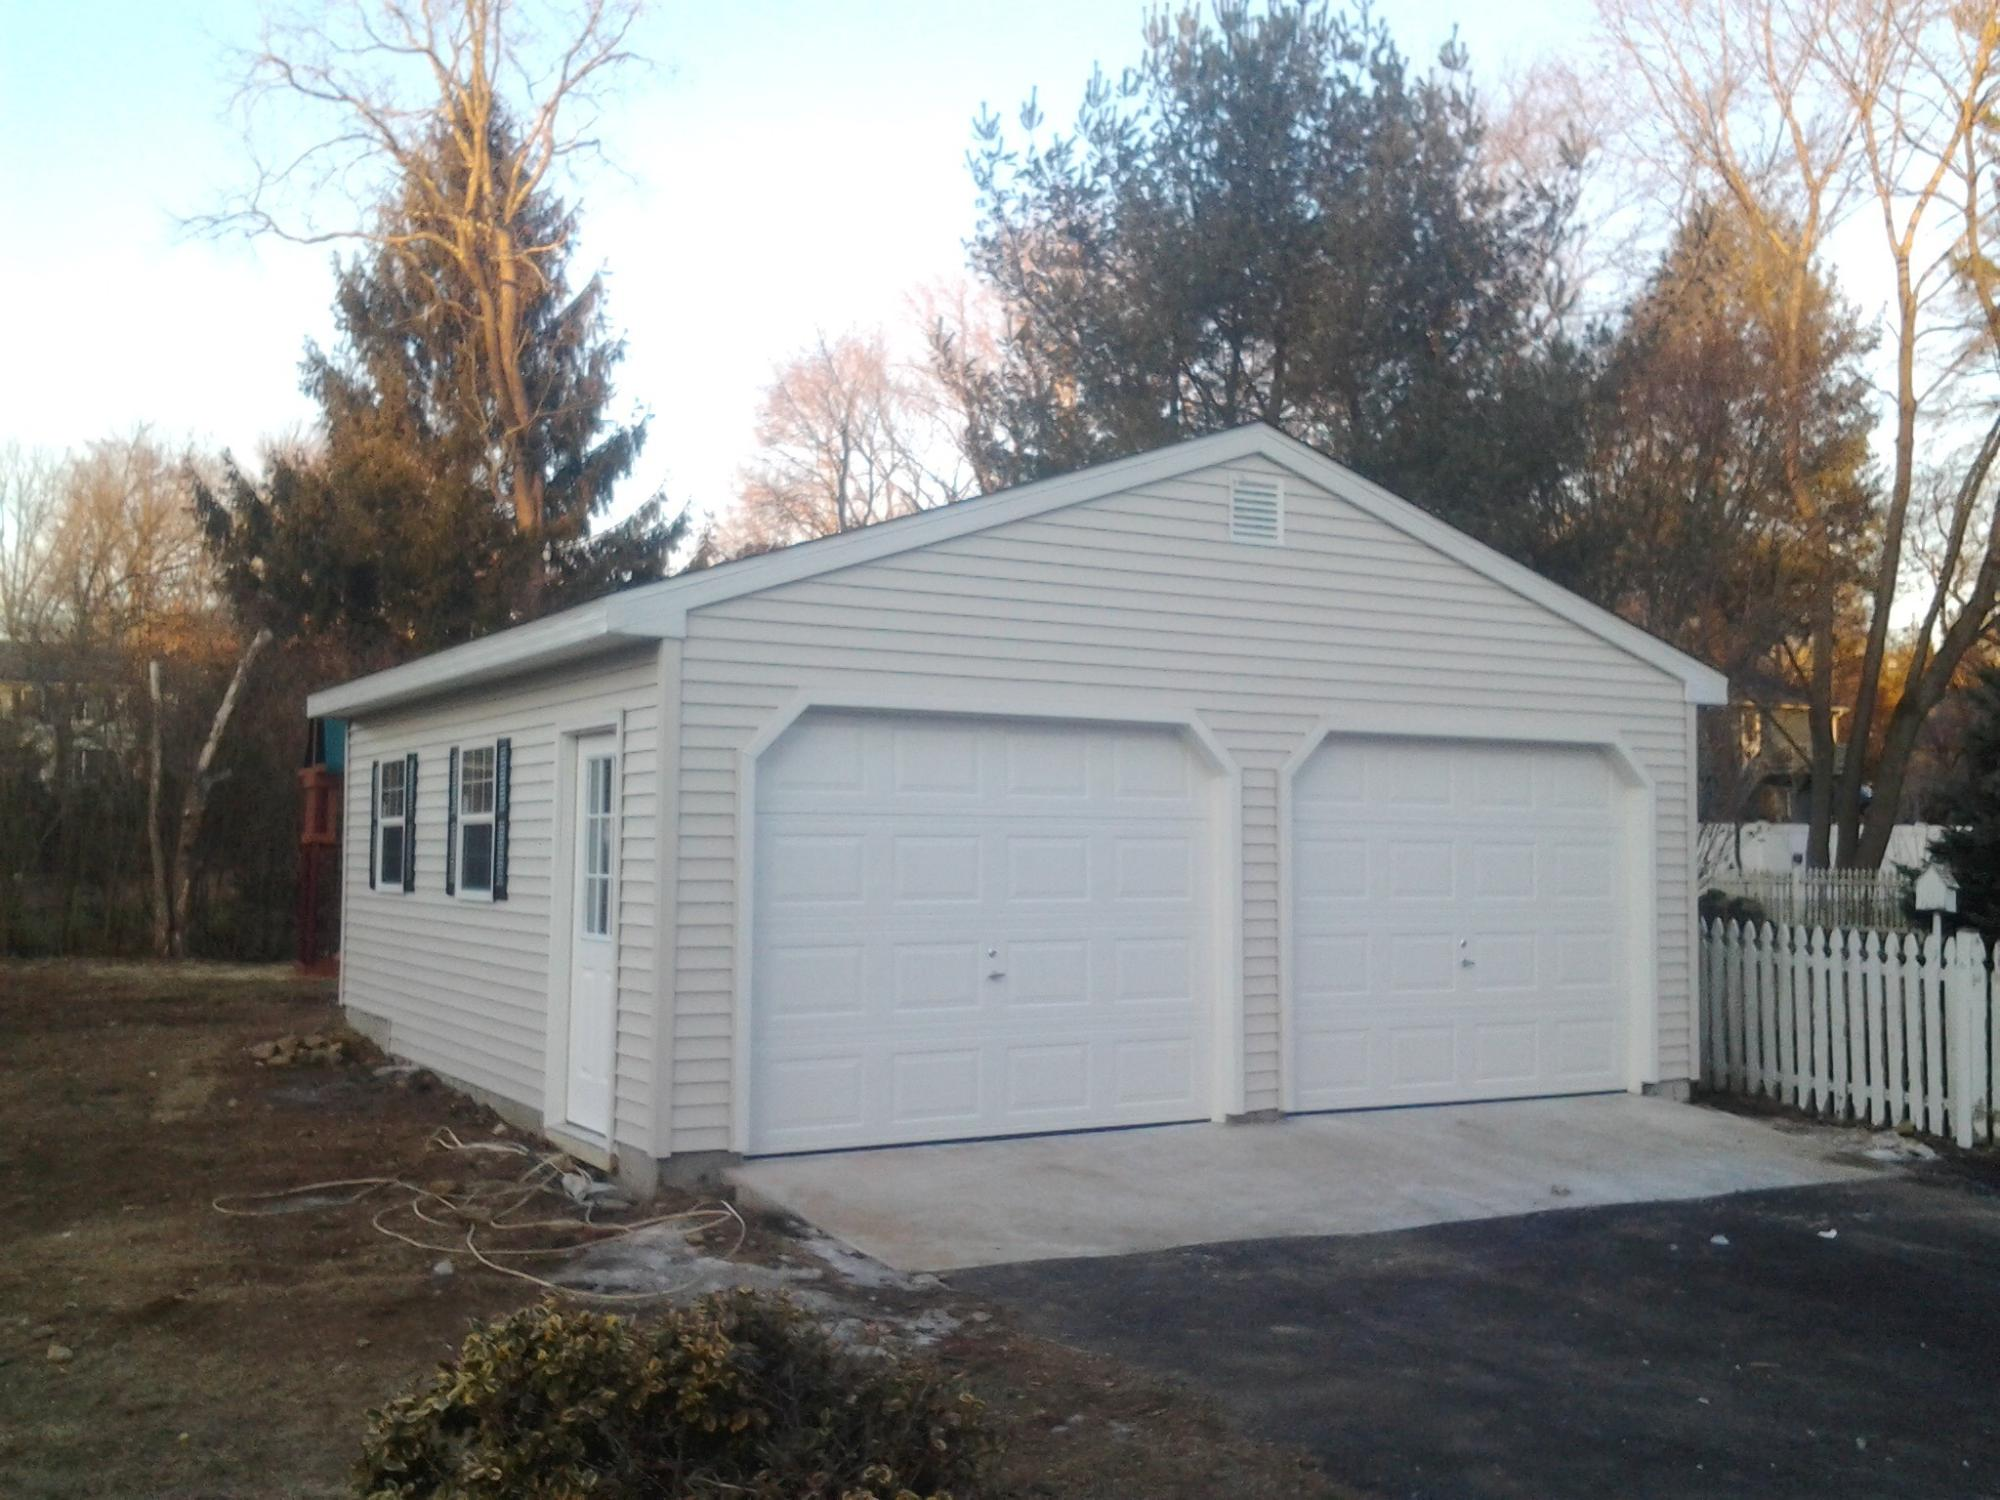 garages what in by other have amish stop see garage sheds structures the available call or welcome barns we and to group